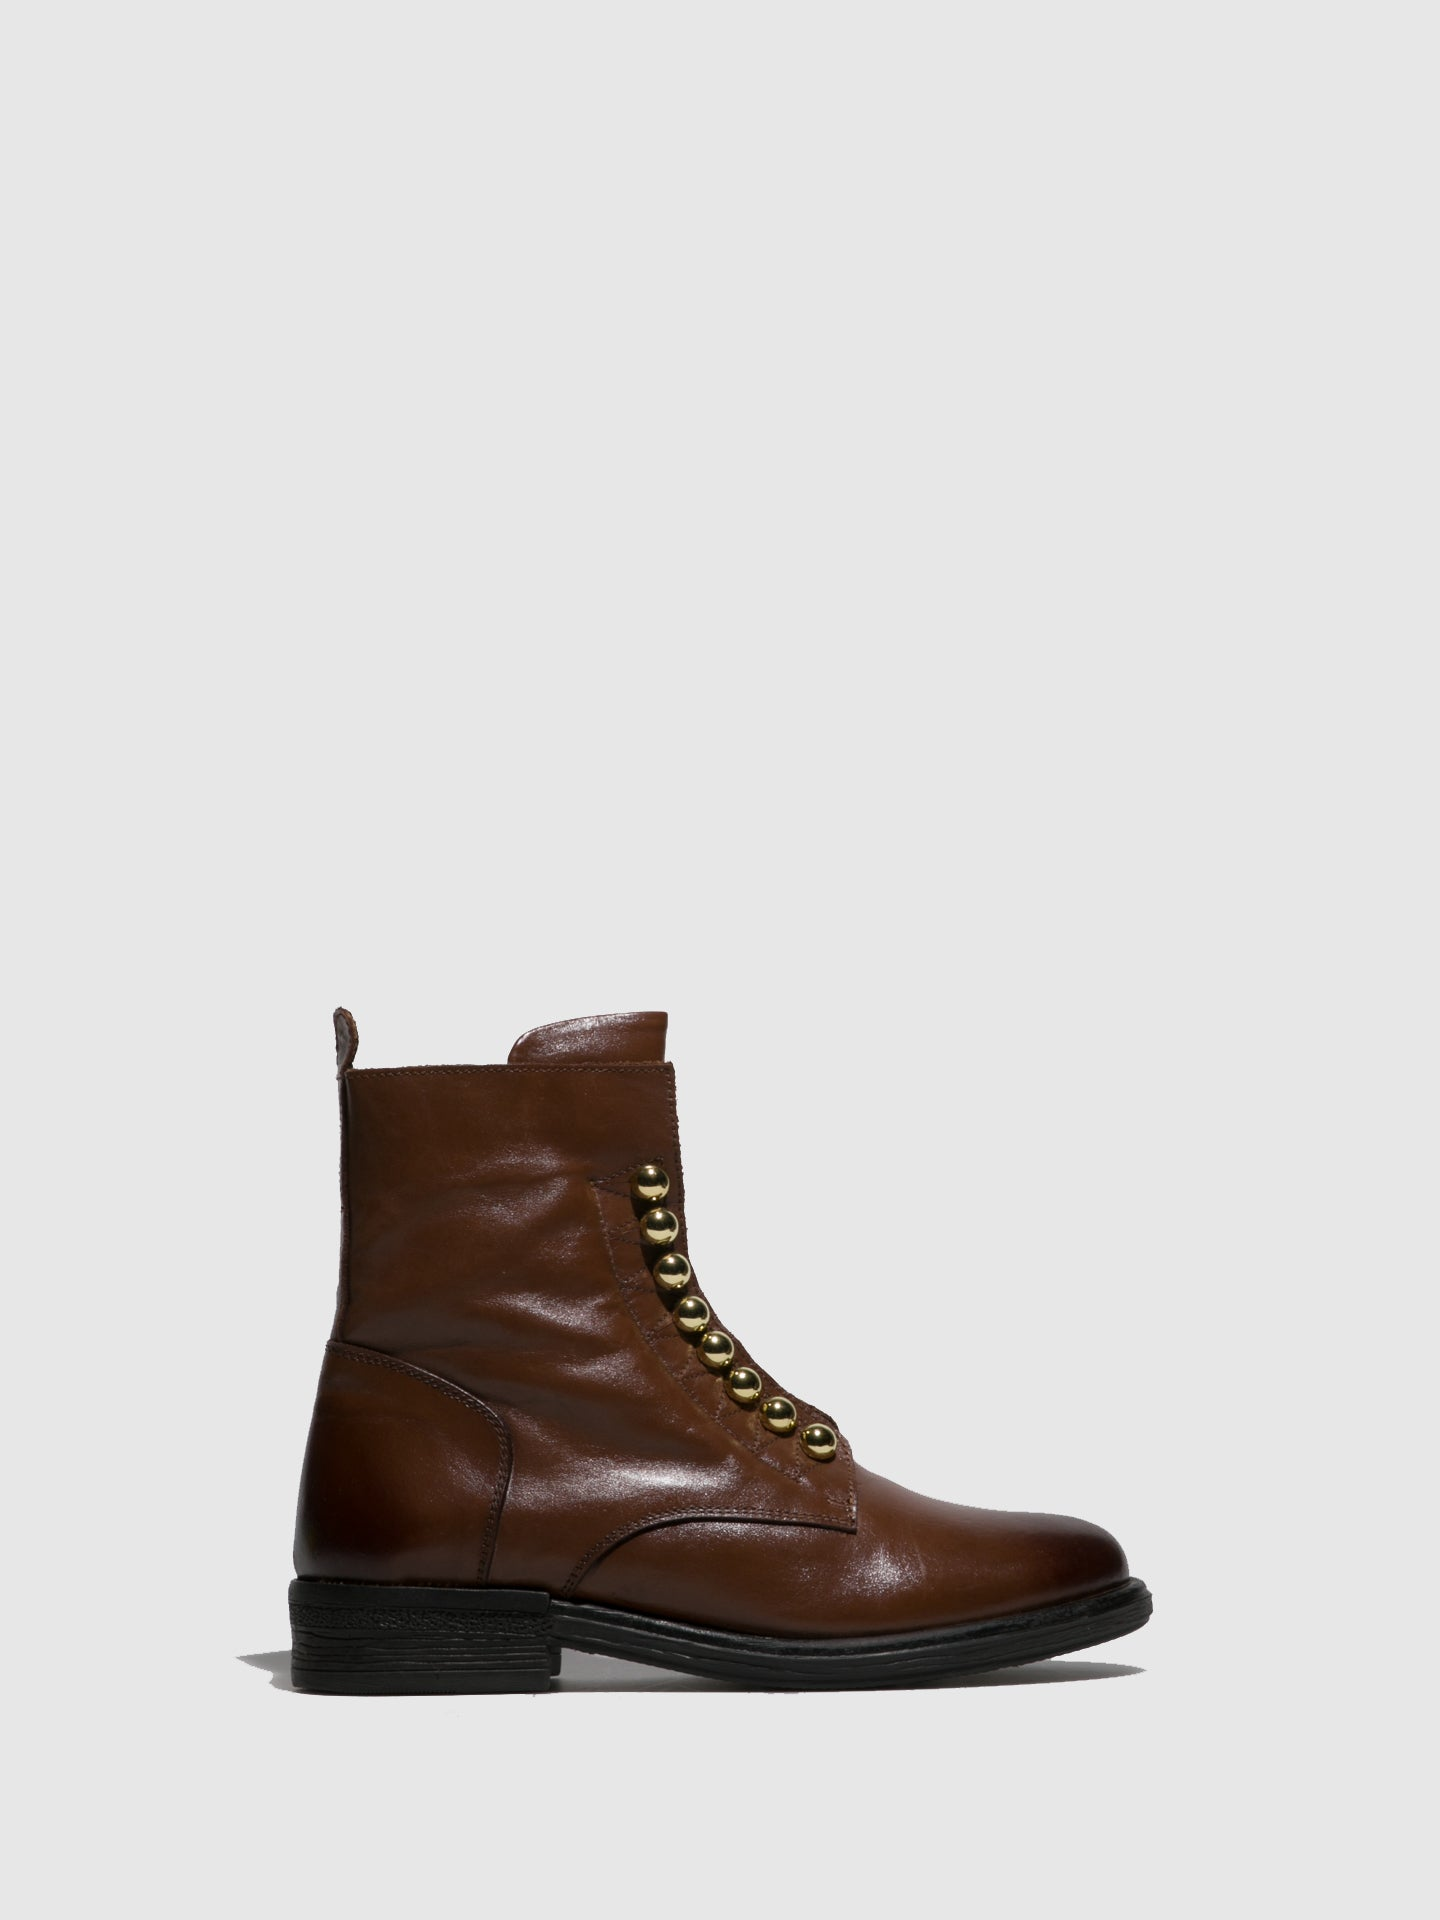 Parodi Sunshine Brown Round Toe Ankle Boots